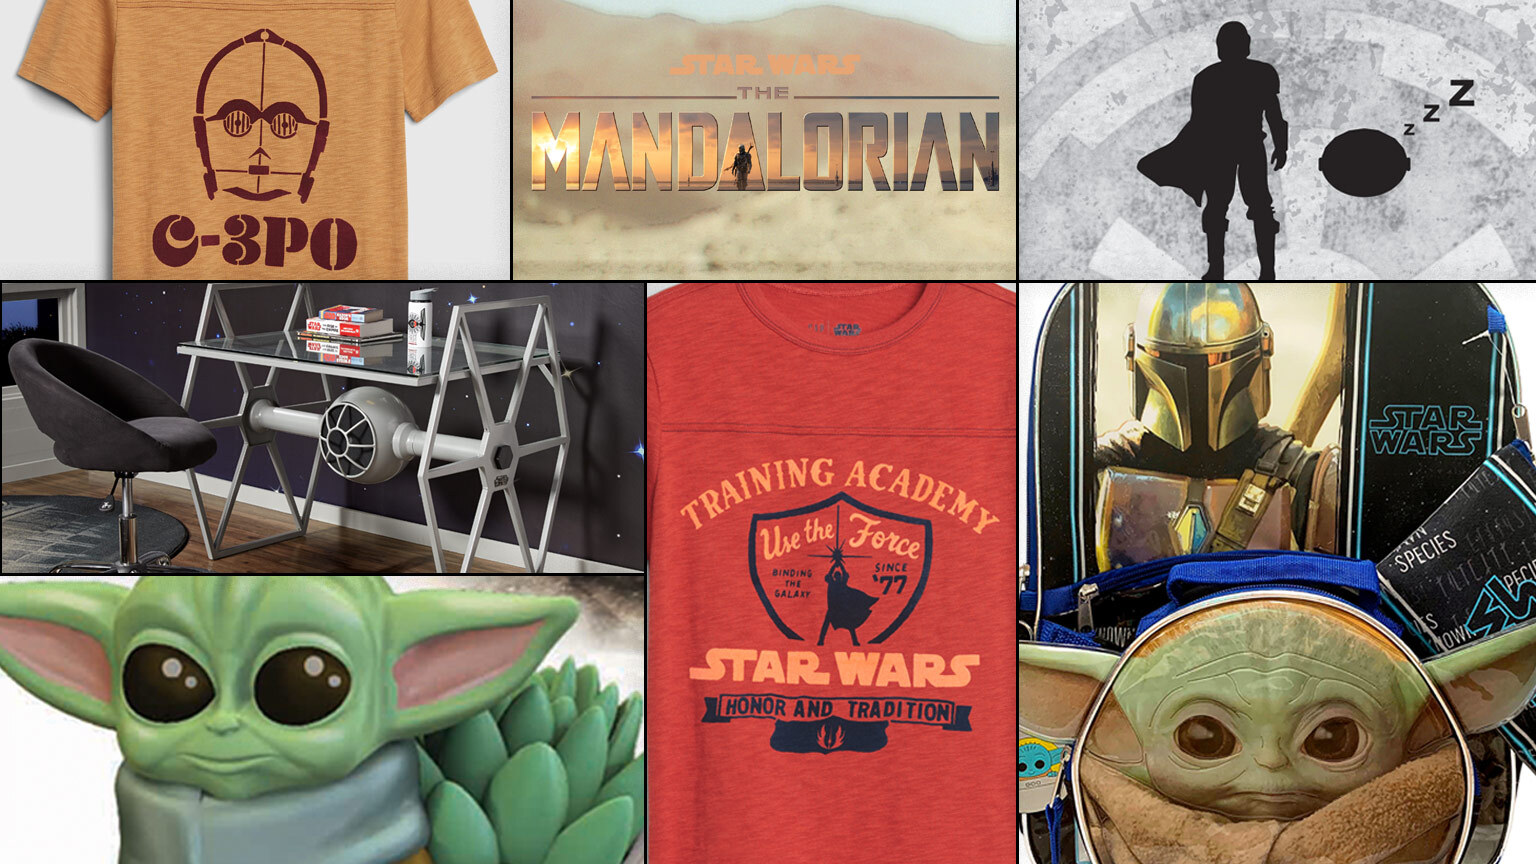 Collage of Star Wars back-to-school items including T-shirts, The Mandalorian stationary, and more.